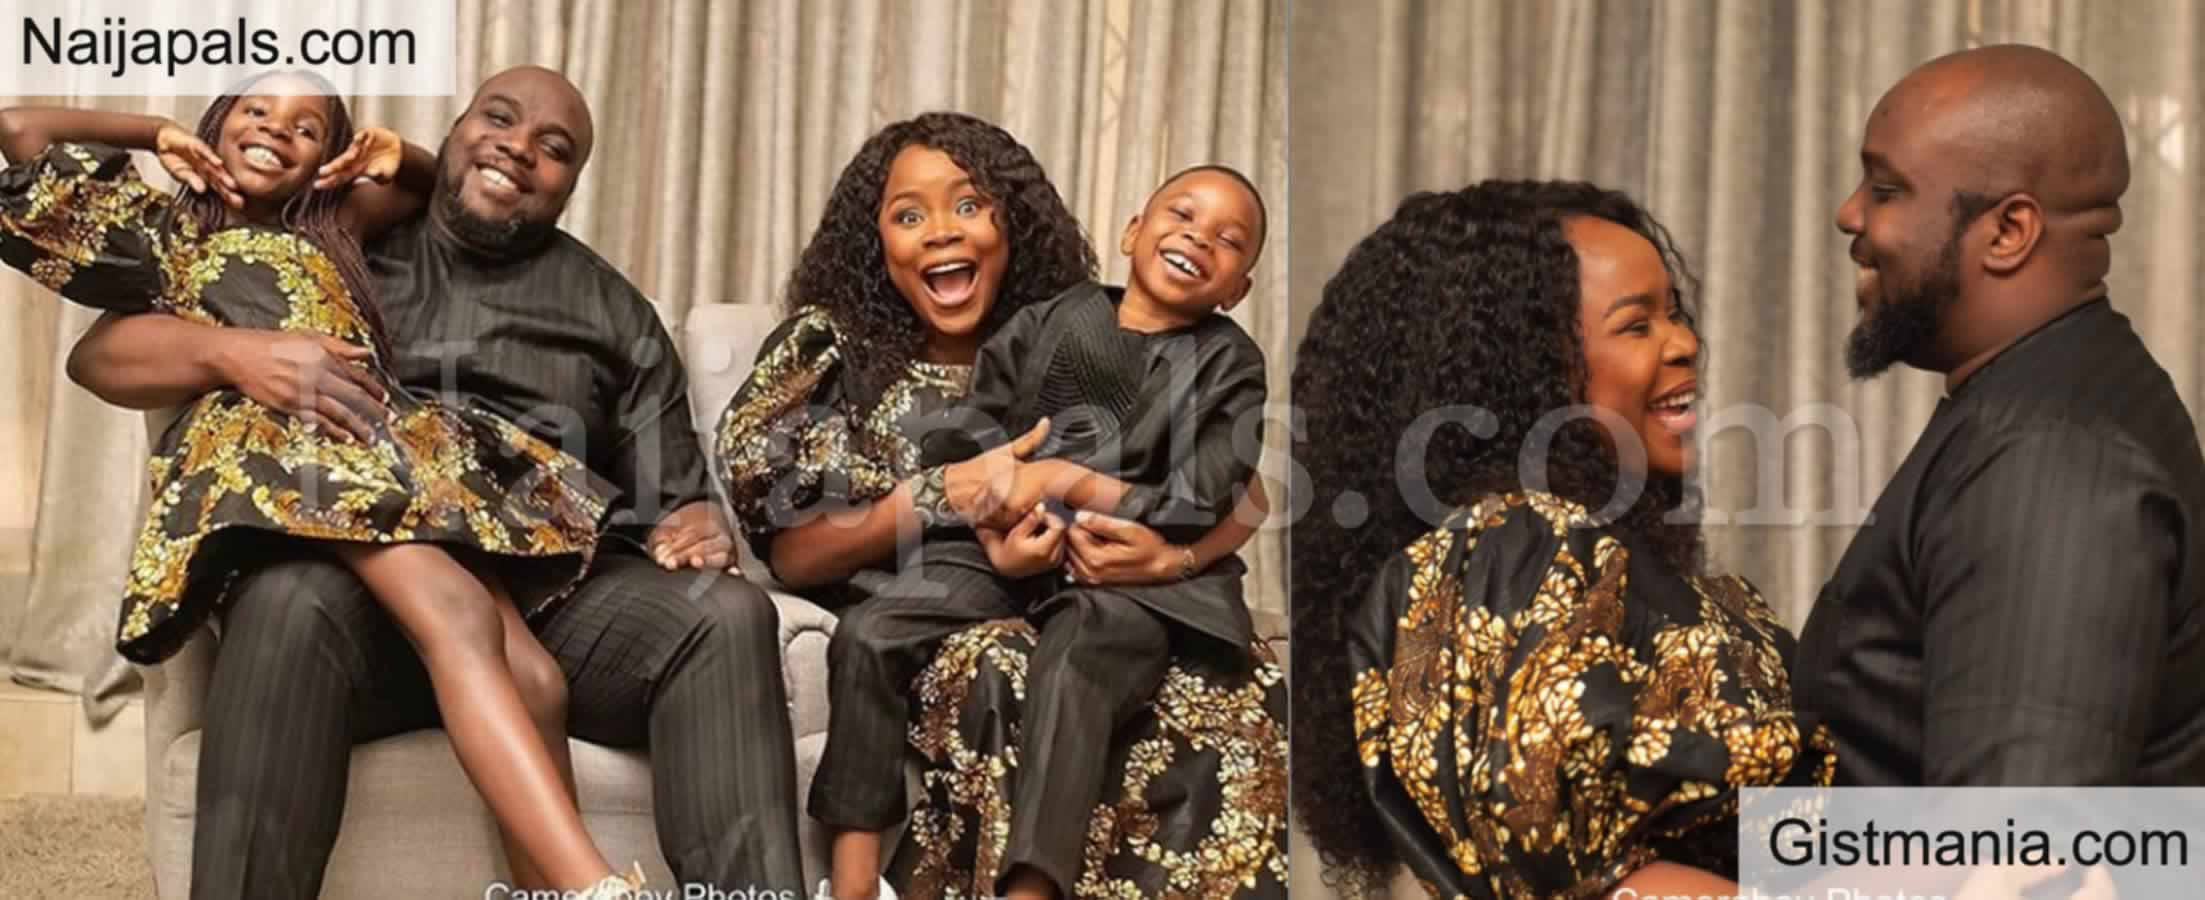 Omawumi and Her Husband Tosin Yusuf Caught Smoking Hookah In A Club - Photos